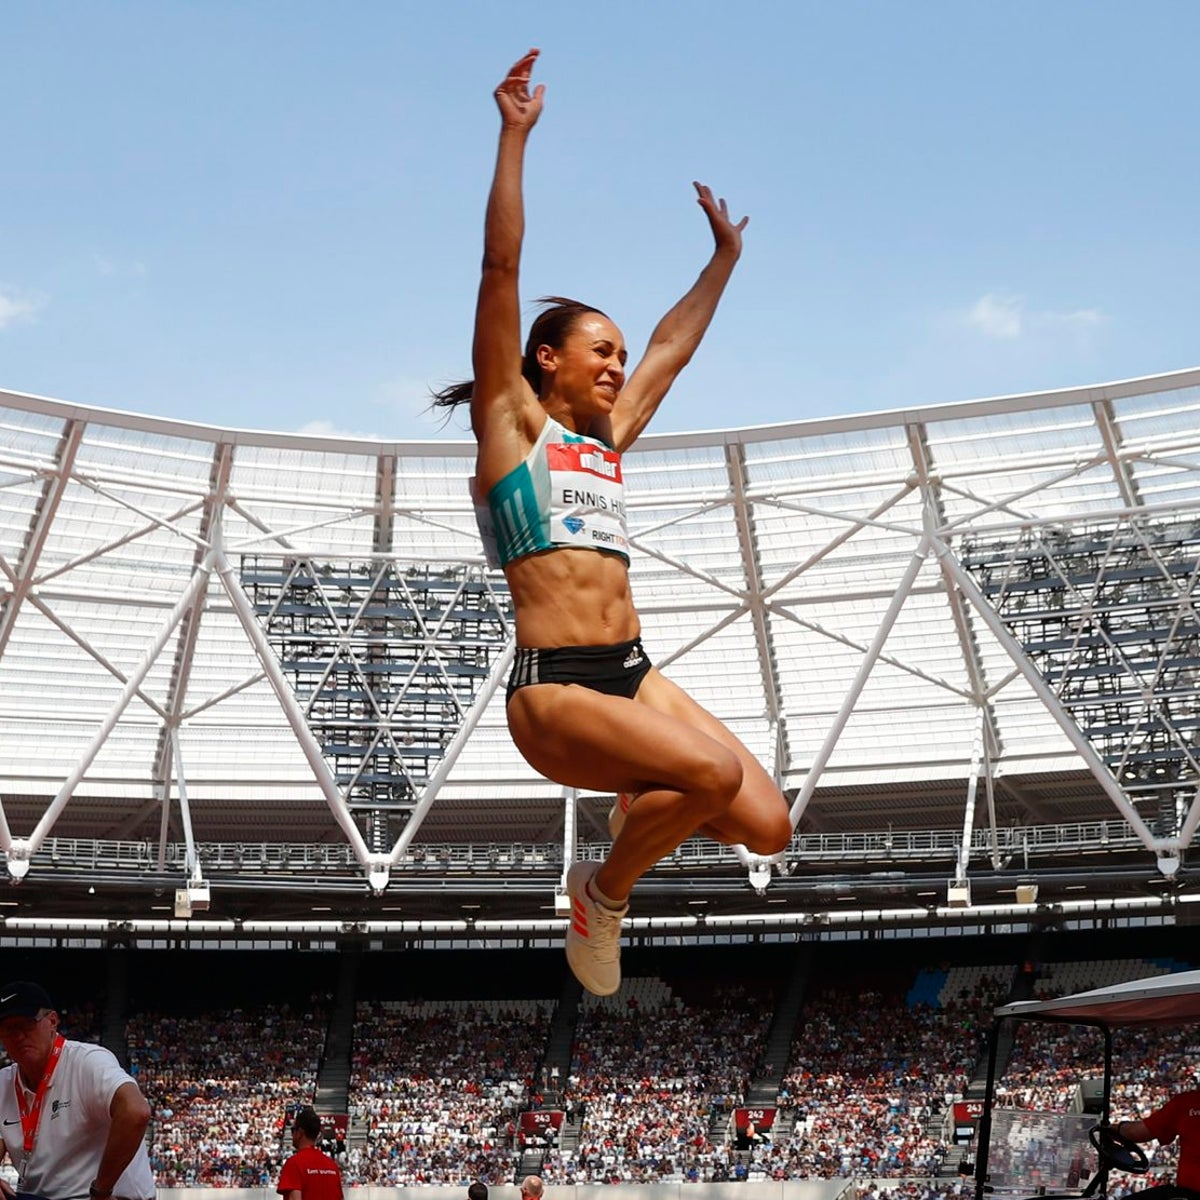 Britain's Jessica Ennis-Hill in the long jump at the 2016 London Anniversary Games, July 23, 2016.